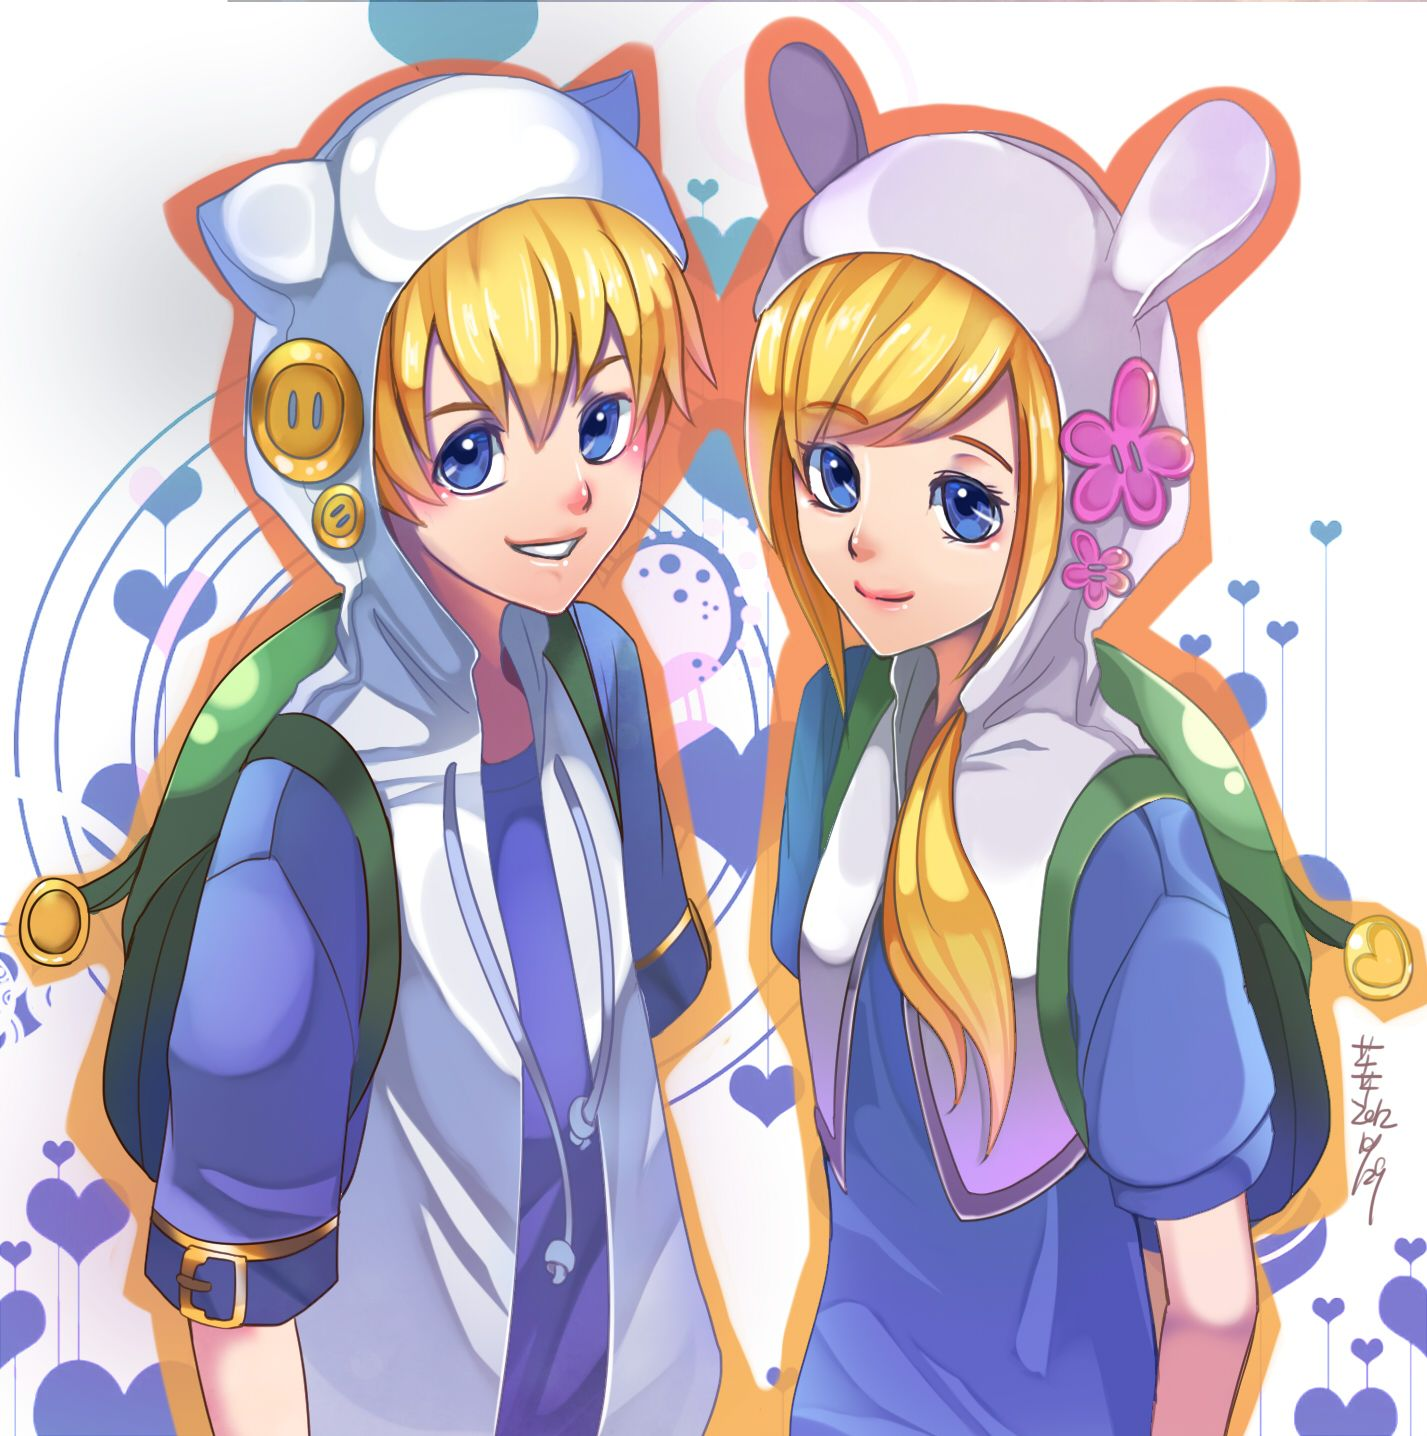 Finn Anime Free Images Gallery Adventure Time Pinterest